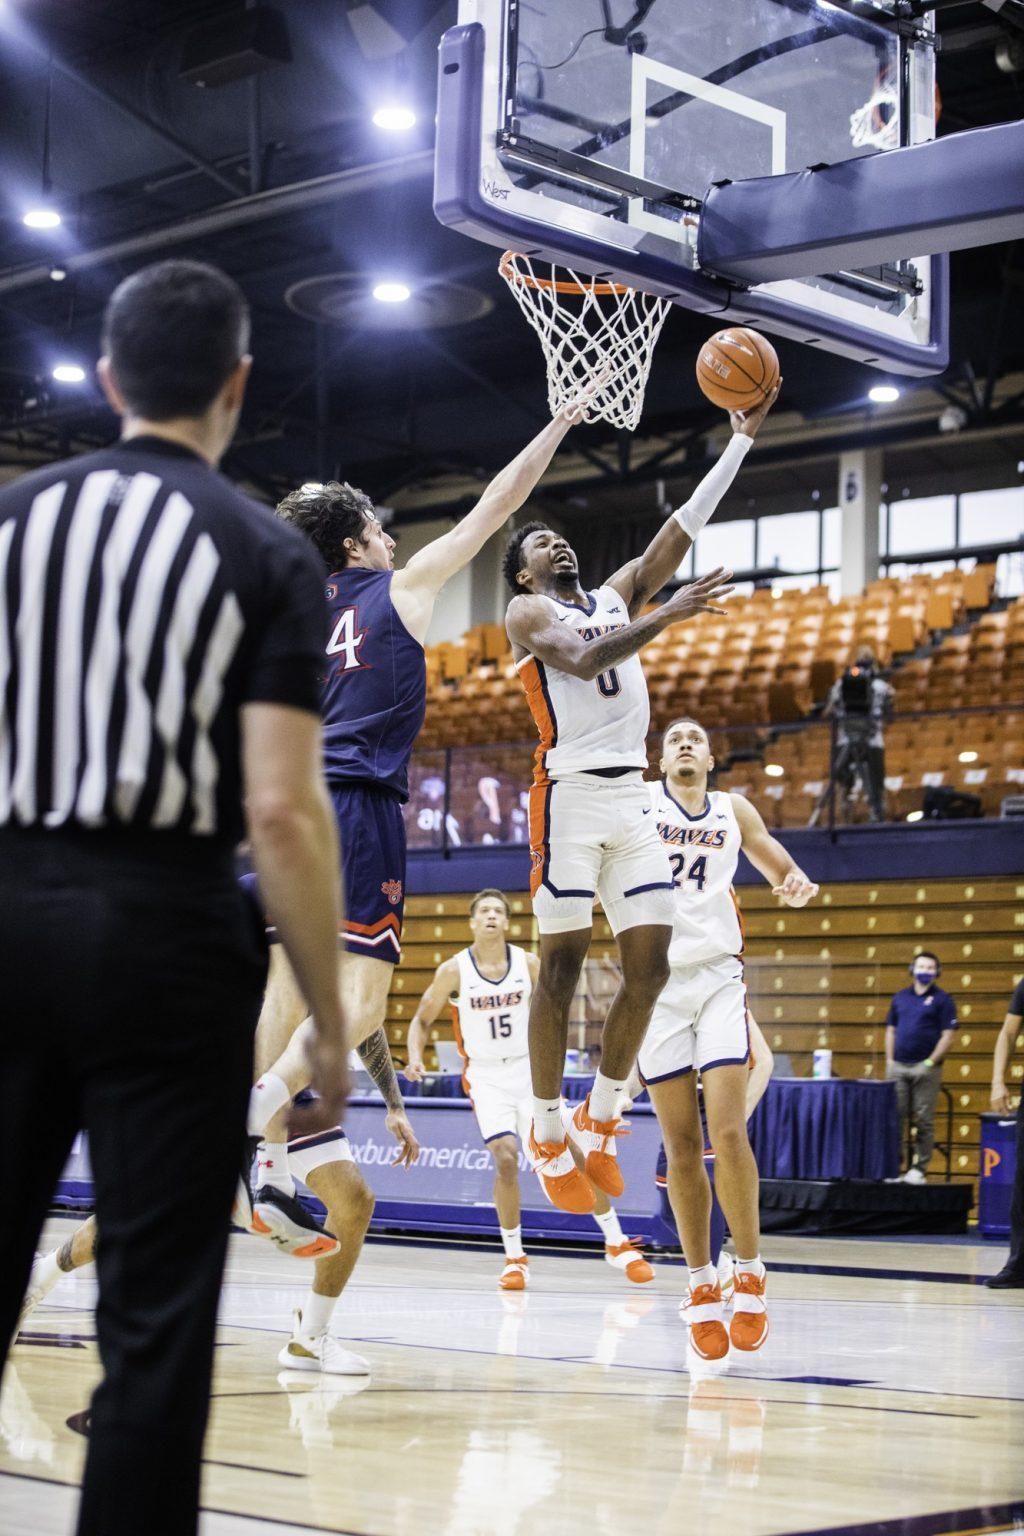 Sophomore guard Sedrick Altman finishes a layup with the left-hand. While he had nine points, his biggest impact was on defense with two steals and two blocks.